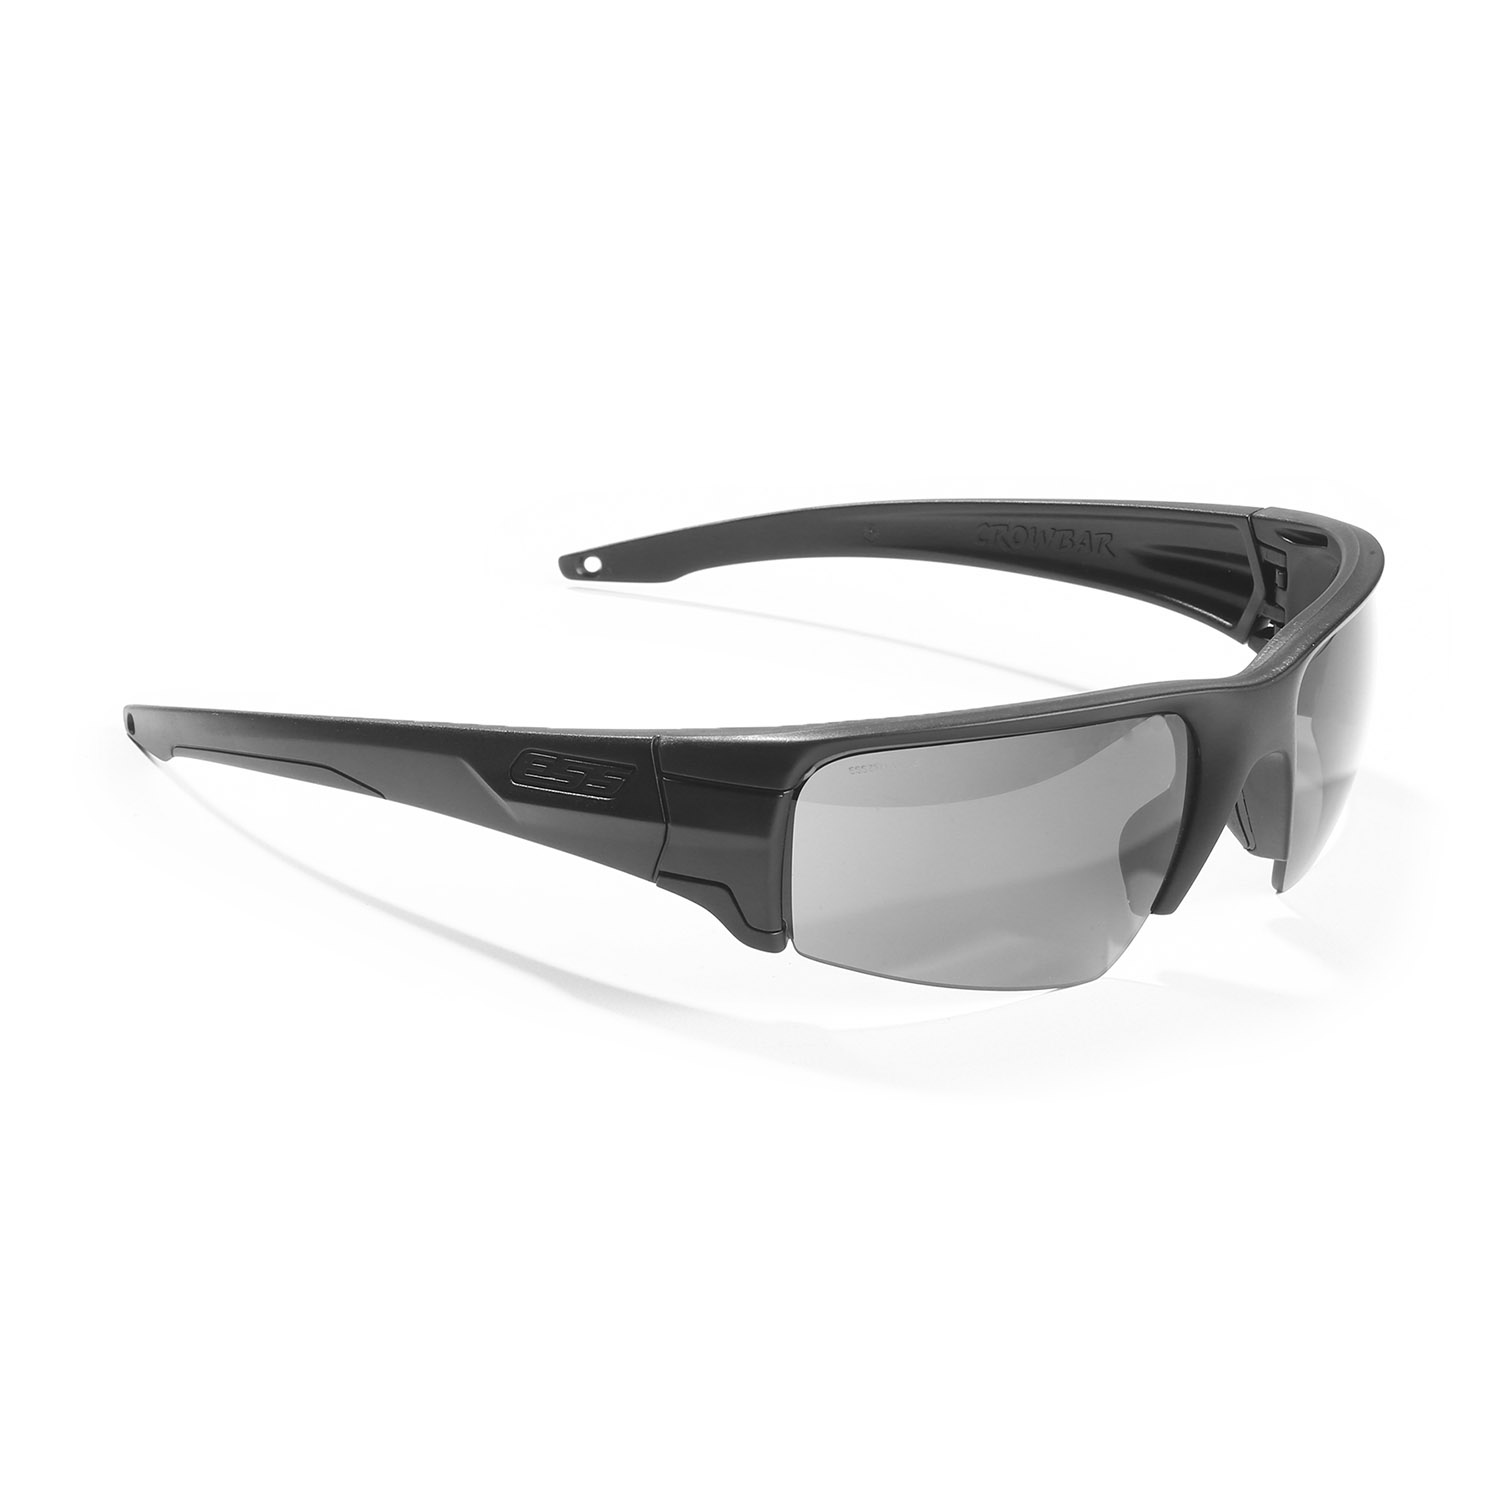 330d2858bd9 ESS Crowbar Sunglasses with Subdued Logo Kit